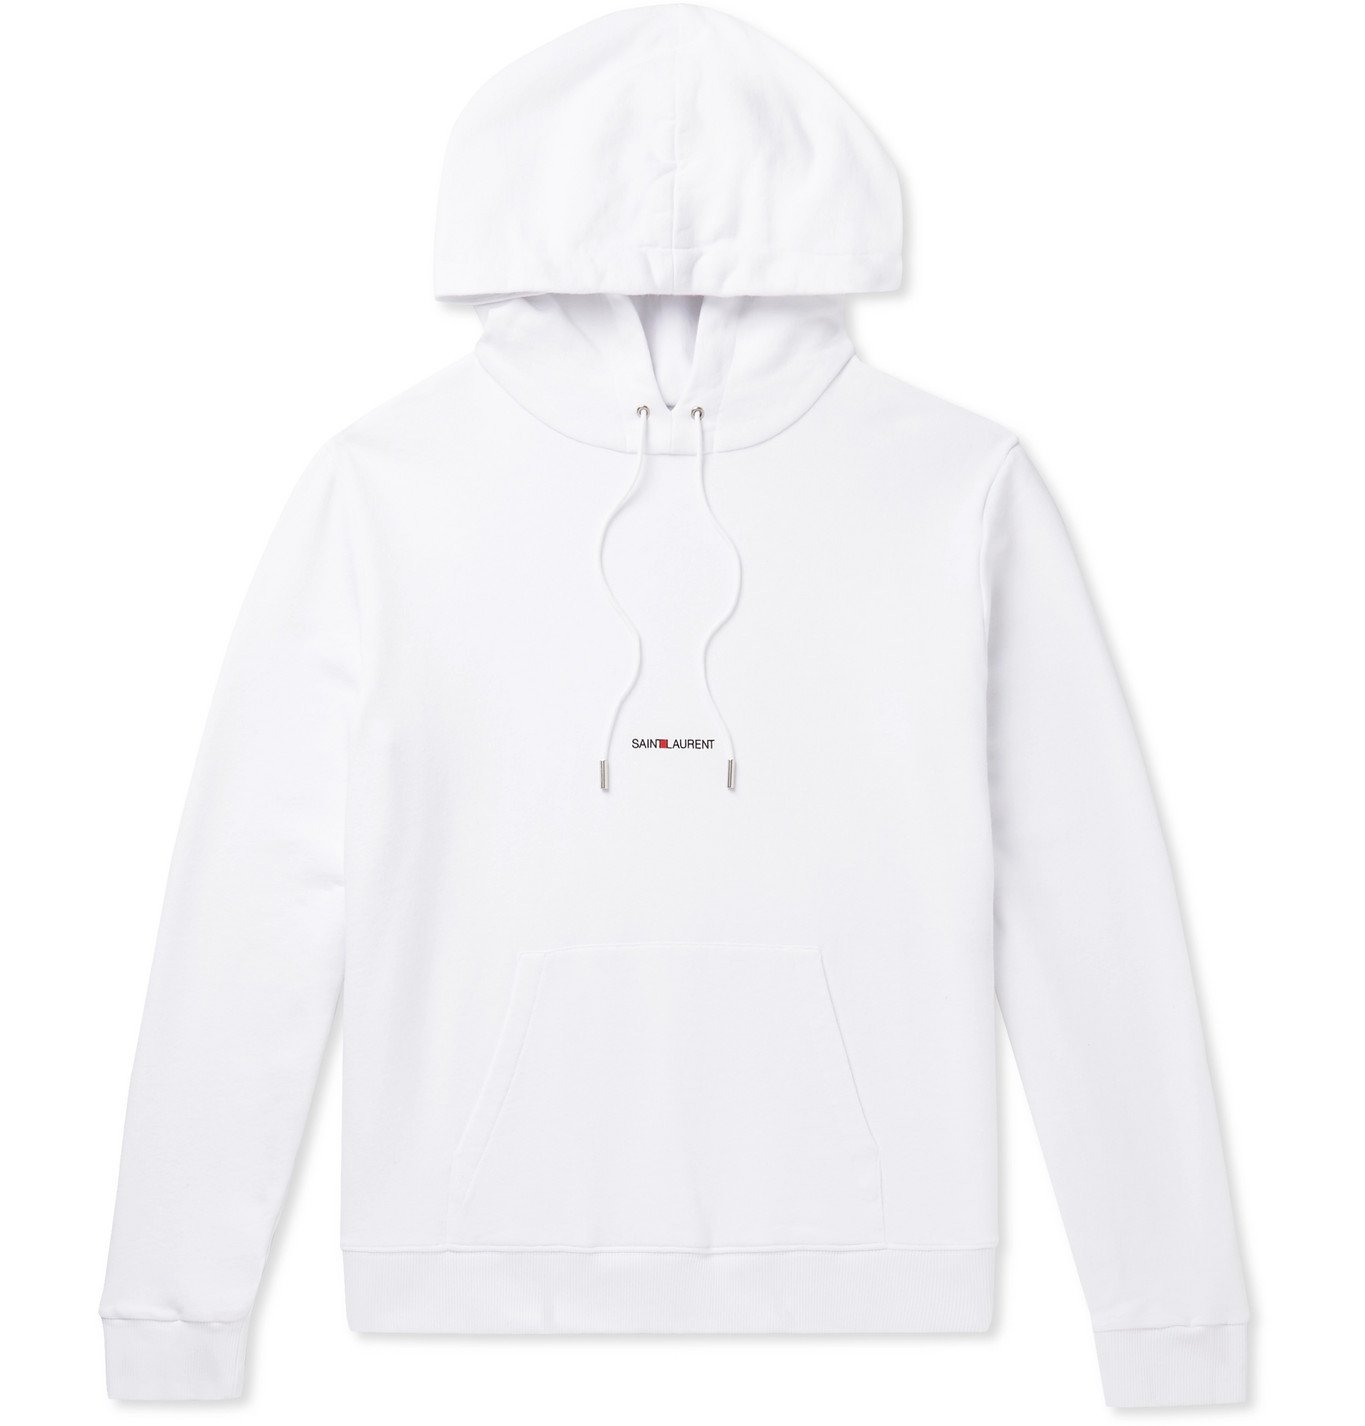 SAINT LAURENT - Logo-Print Loopback Cotton-Jersey Hoodie - White